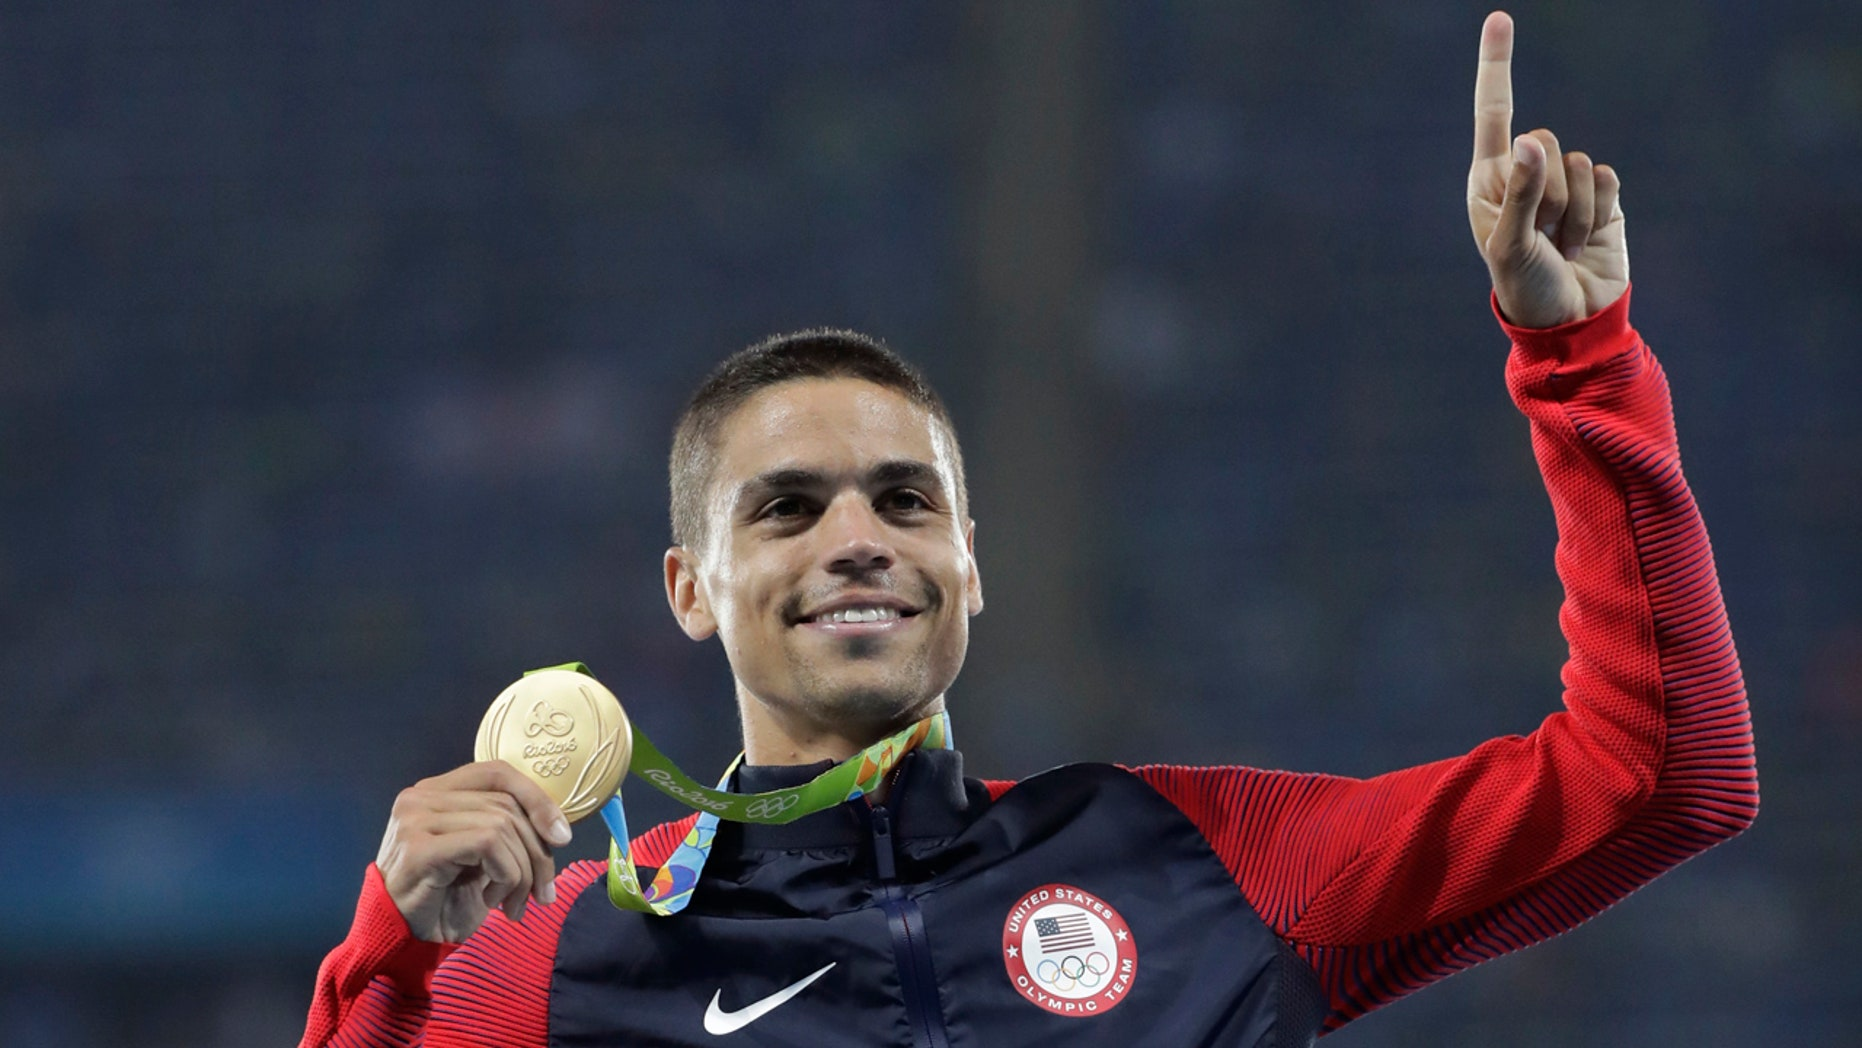 Aug. 20, 2016: United States' Matthew Centrowitz celebrates on the podium after winning the men's 1500-meter final during athletics competitions at the Summer Olympics inside Olympic stadium in Rio de Janeiro, Brazil.